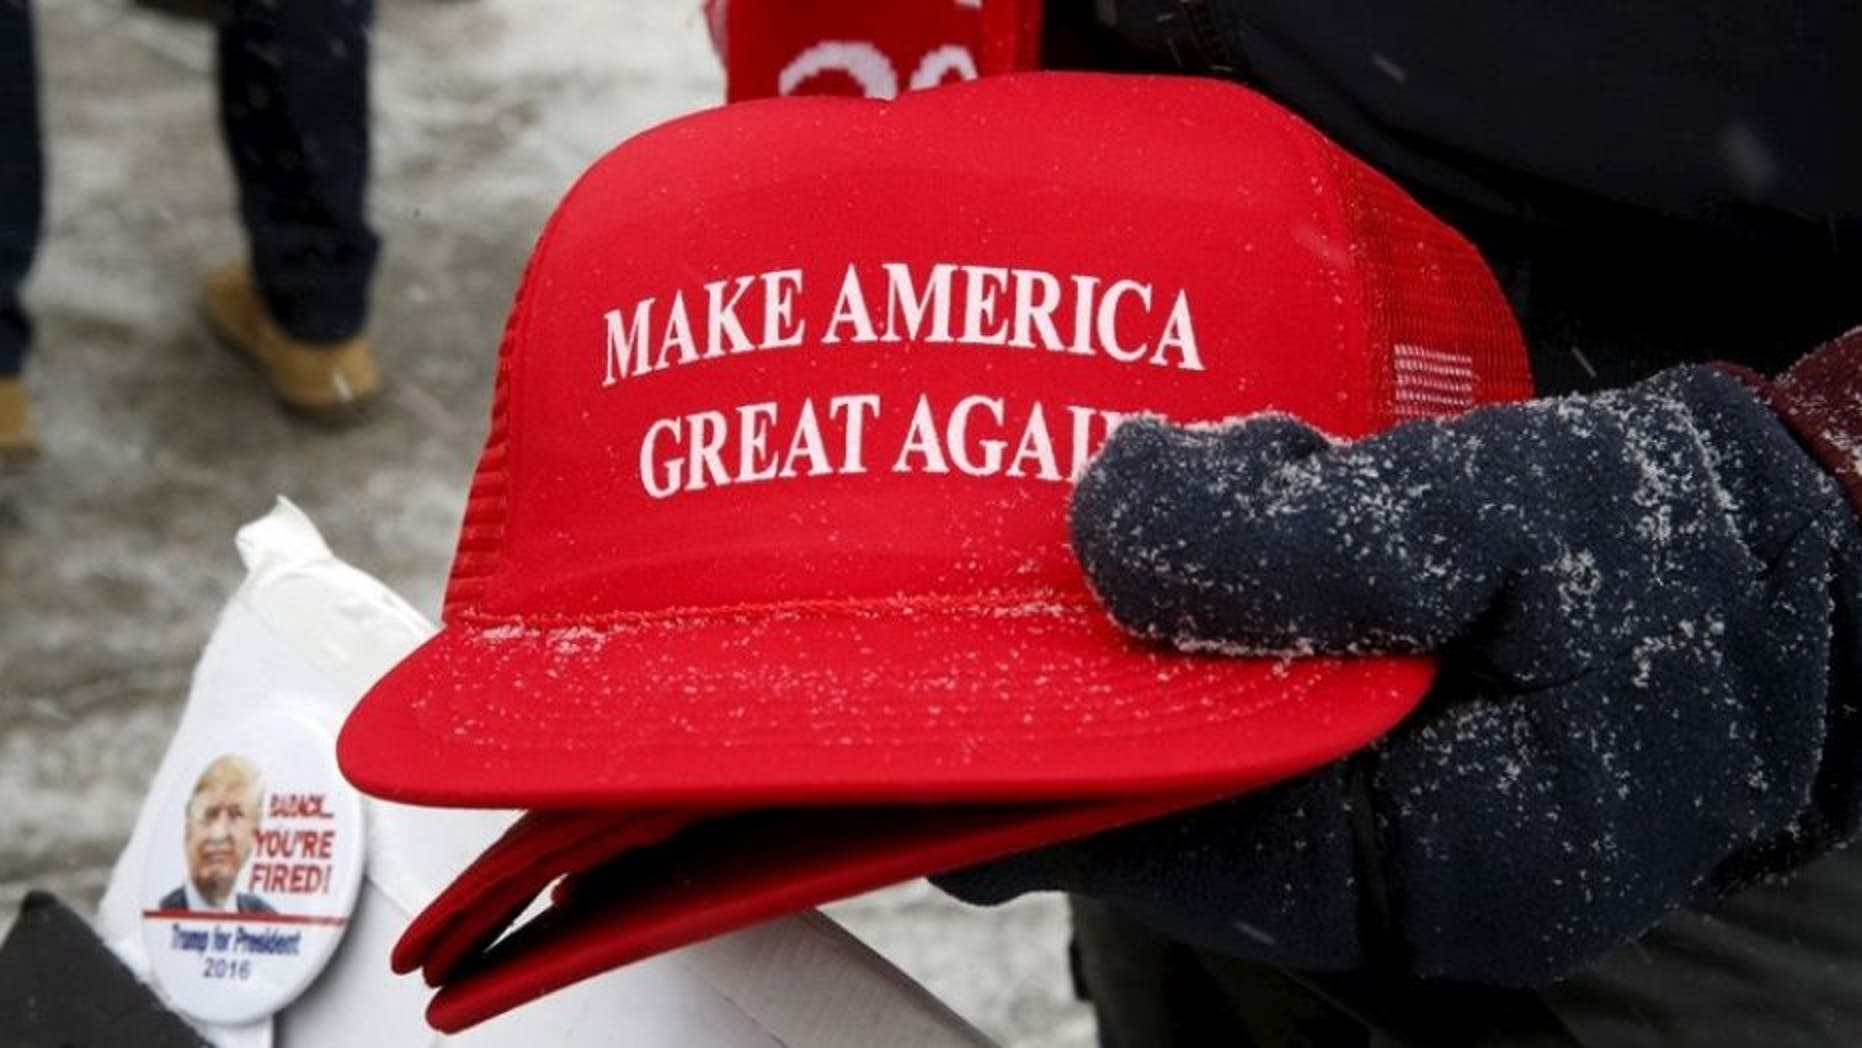 A bar in Chicago announced the hat ban over the weekend on social media.